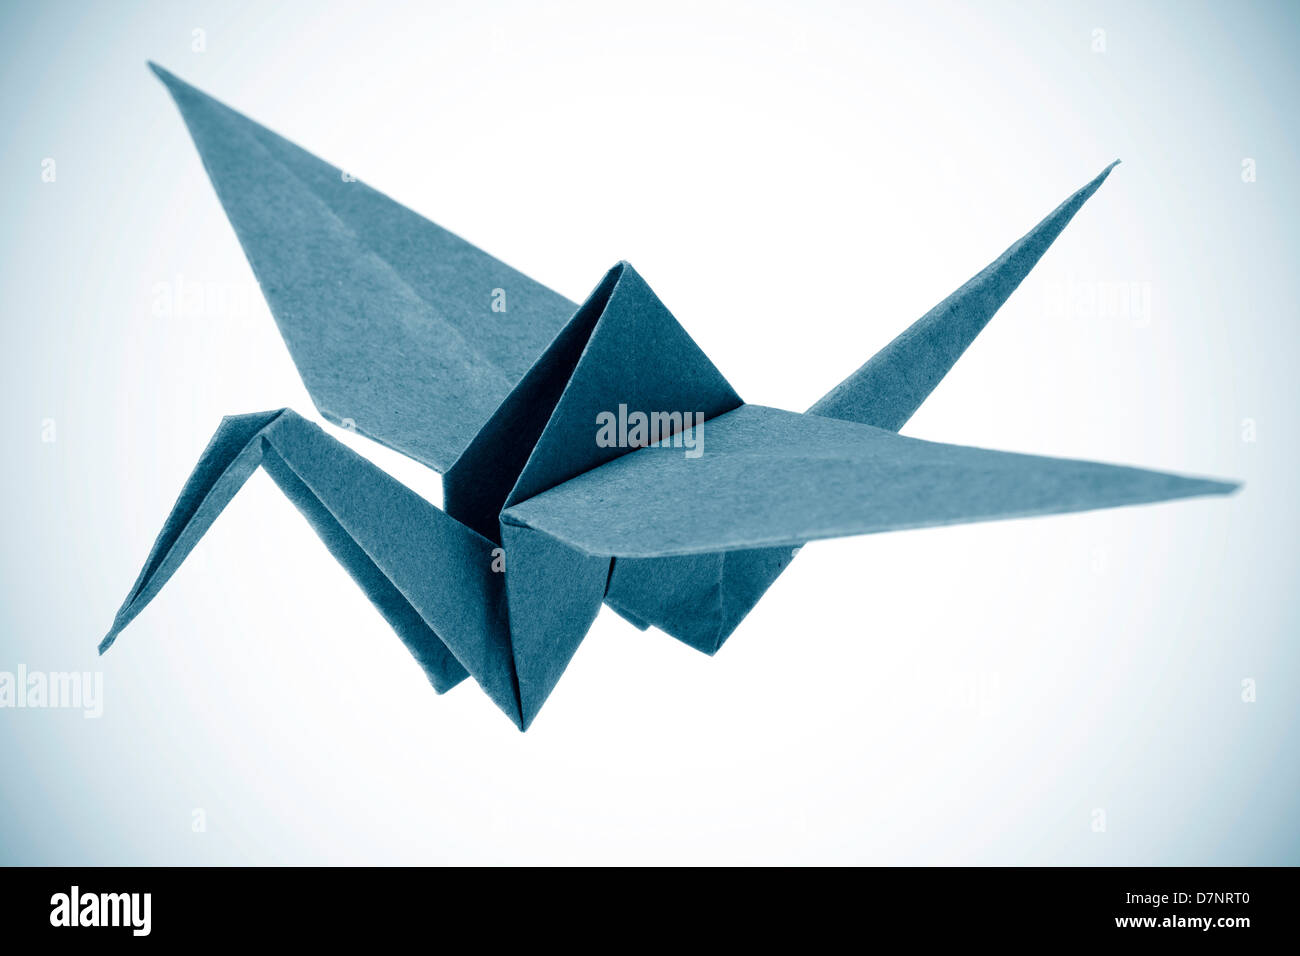 Origami crane isolated on a white background - Stock Image